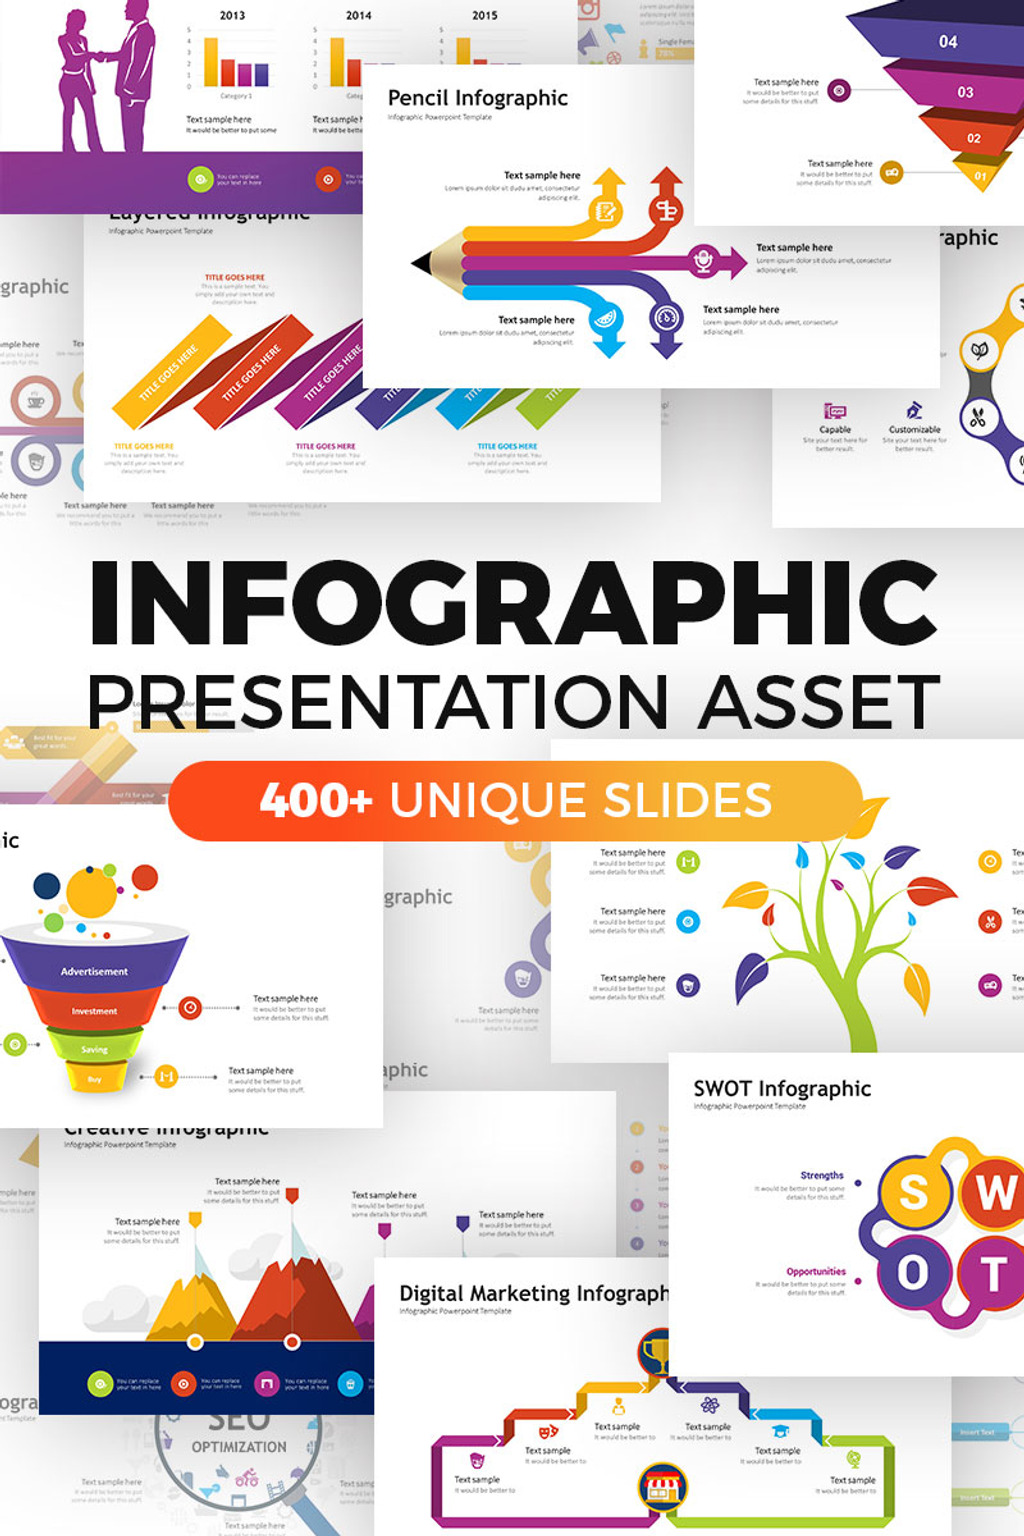 827 powerpoint templates ppt templates powerpoint themes infographic pack presentation asset powerpoint template toneelgroepblik Image collections